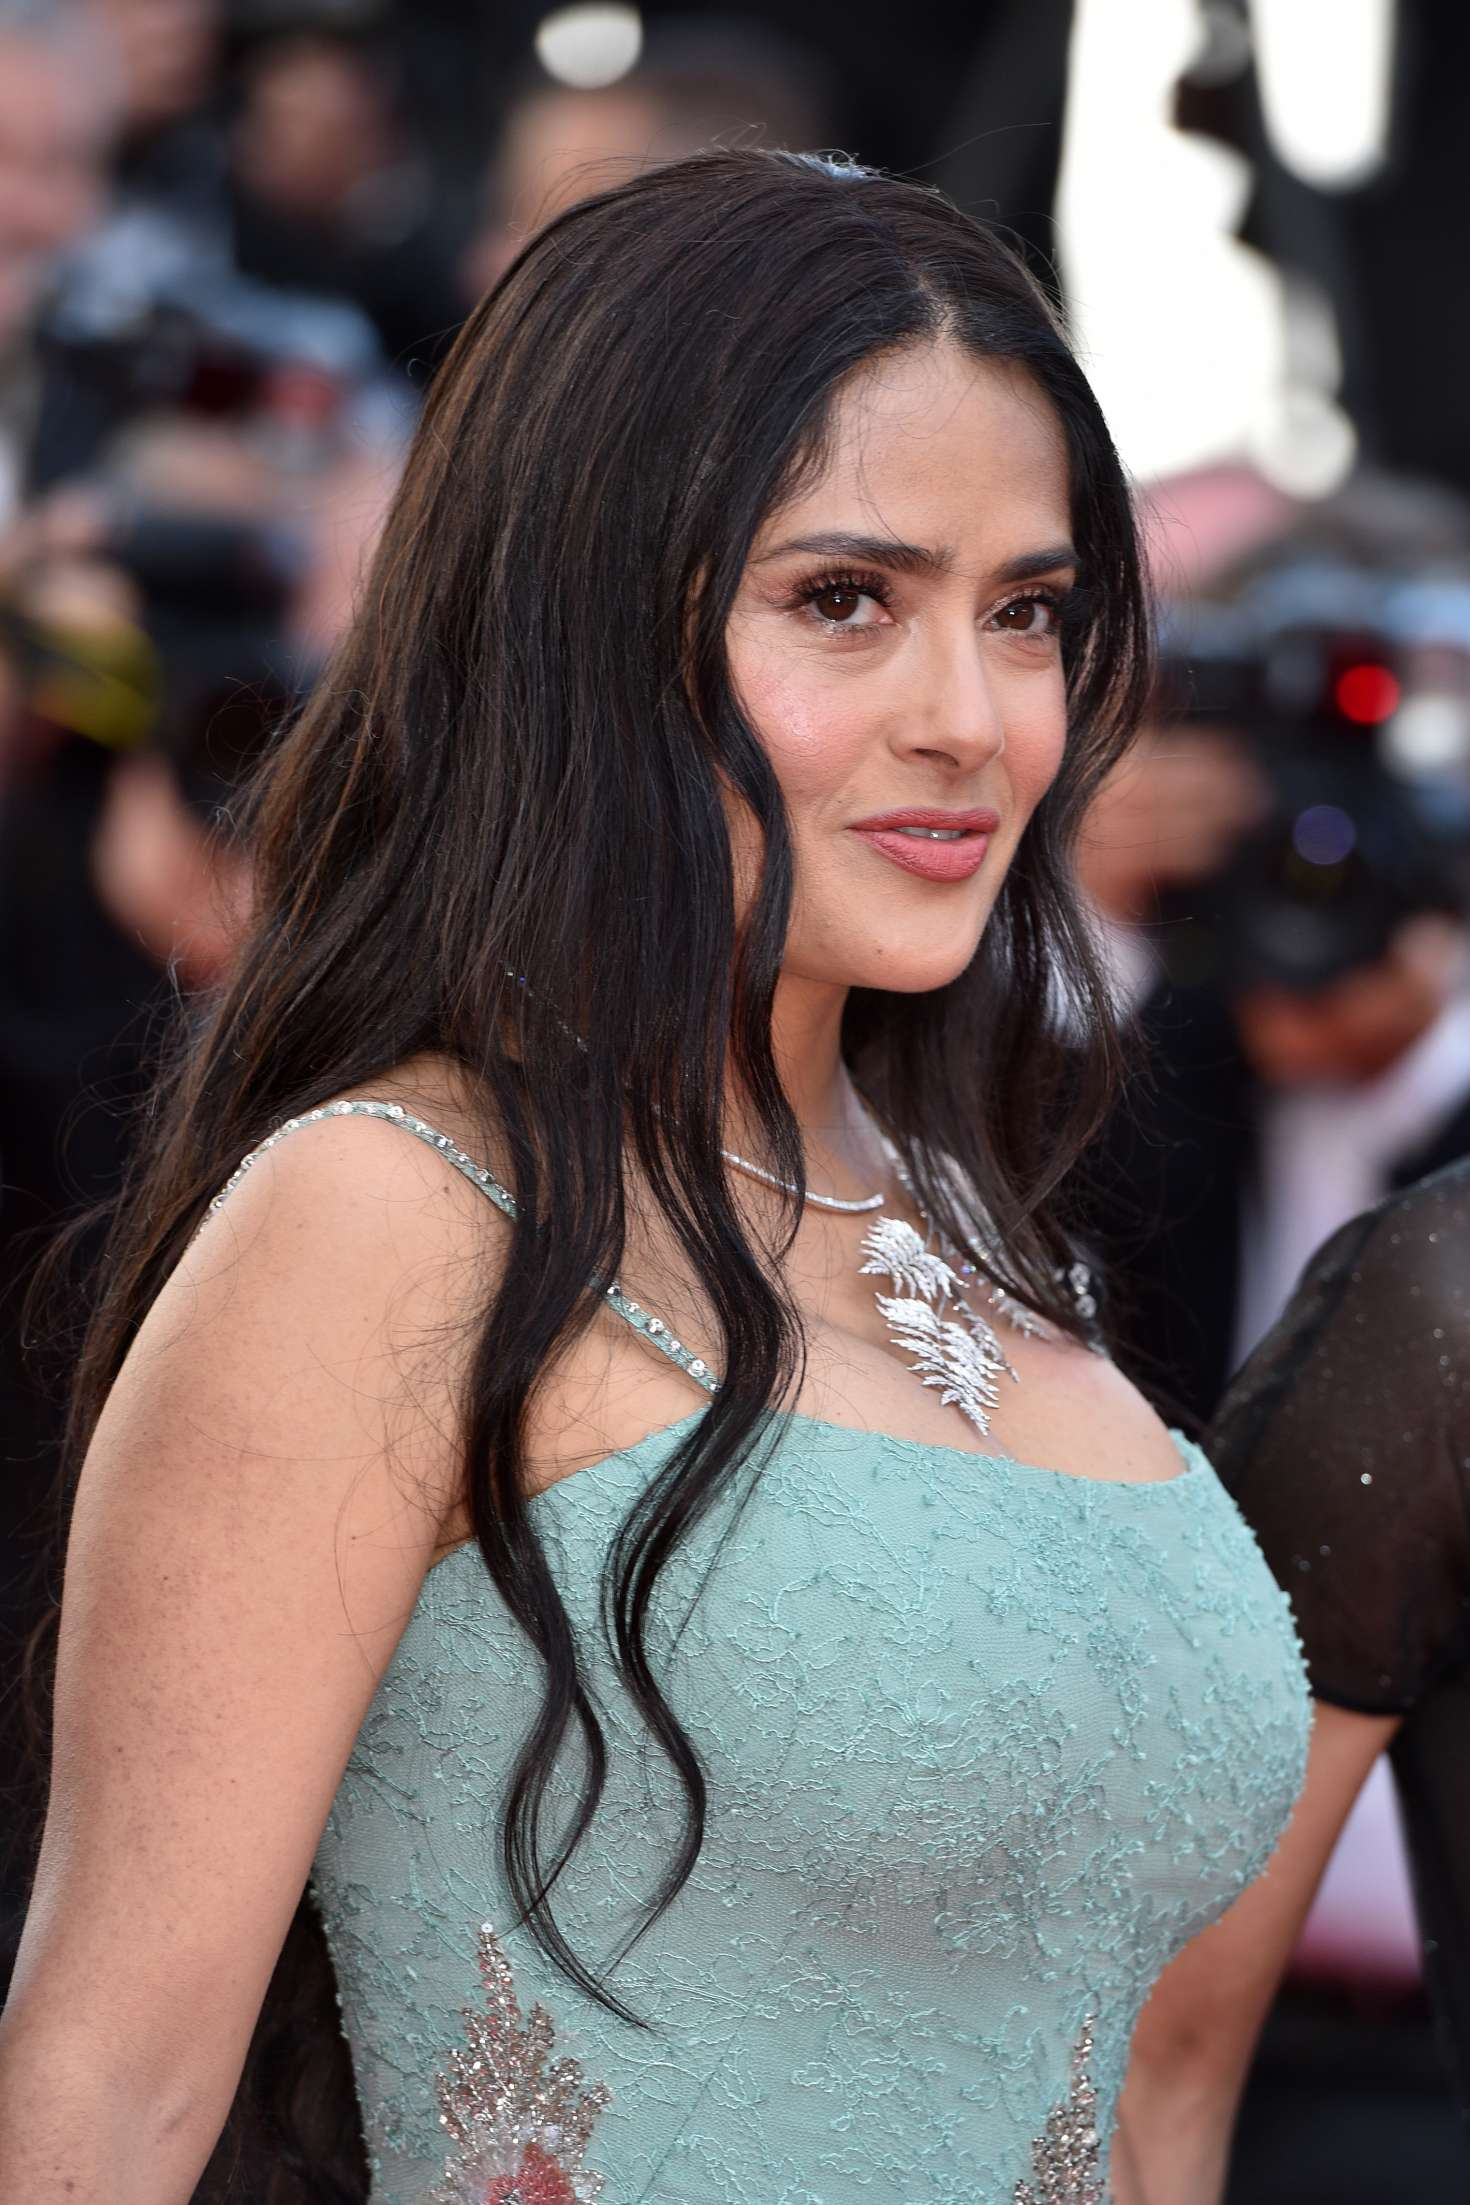 http://www.gotceleb.com/wp-content/uploads/photos/salma-hayek/girls-of-the-sun-premiere-at-2018-cannes-film-festival/Salma-Hayek:-Girls-Of-The-Sun-Premiere-at-2018-Cannes-Film-Festival--02.jpg